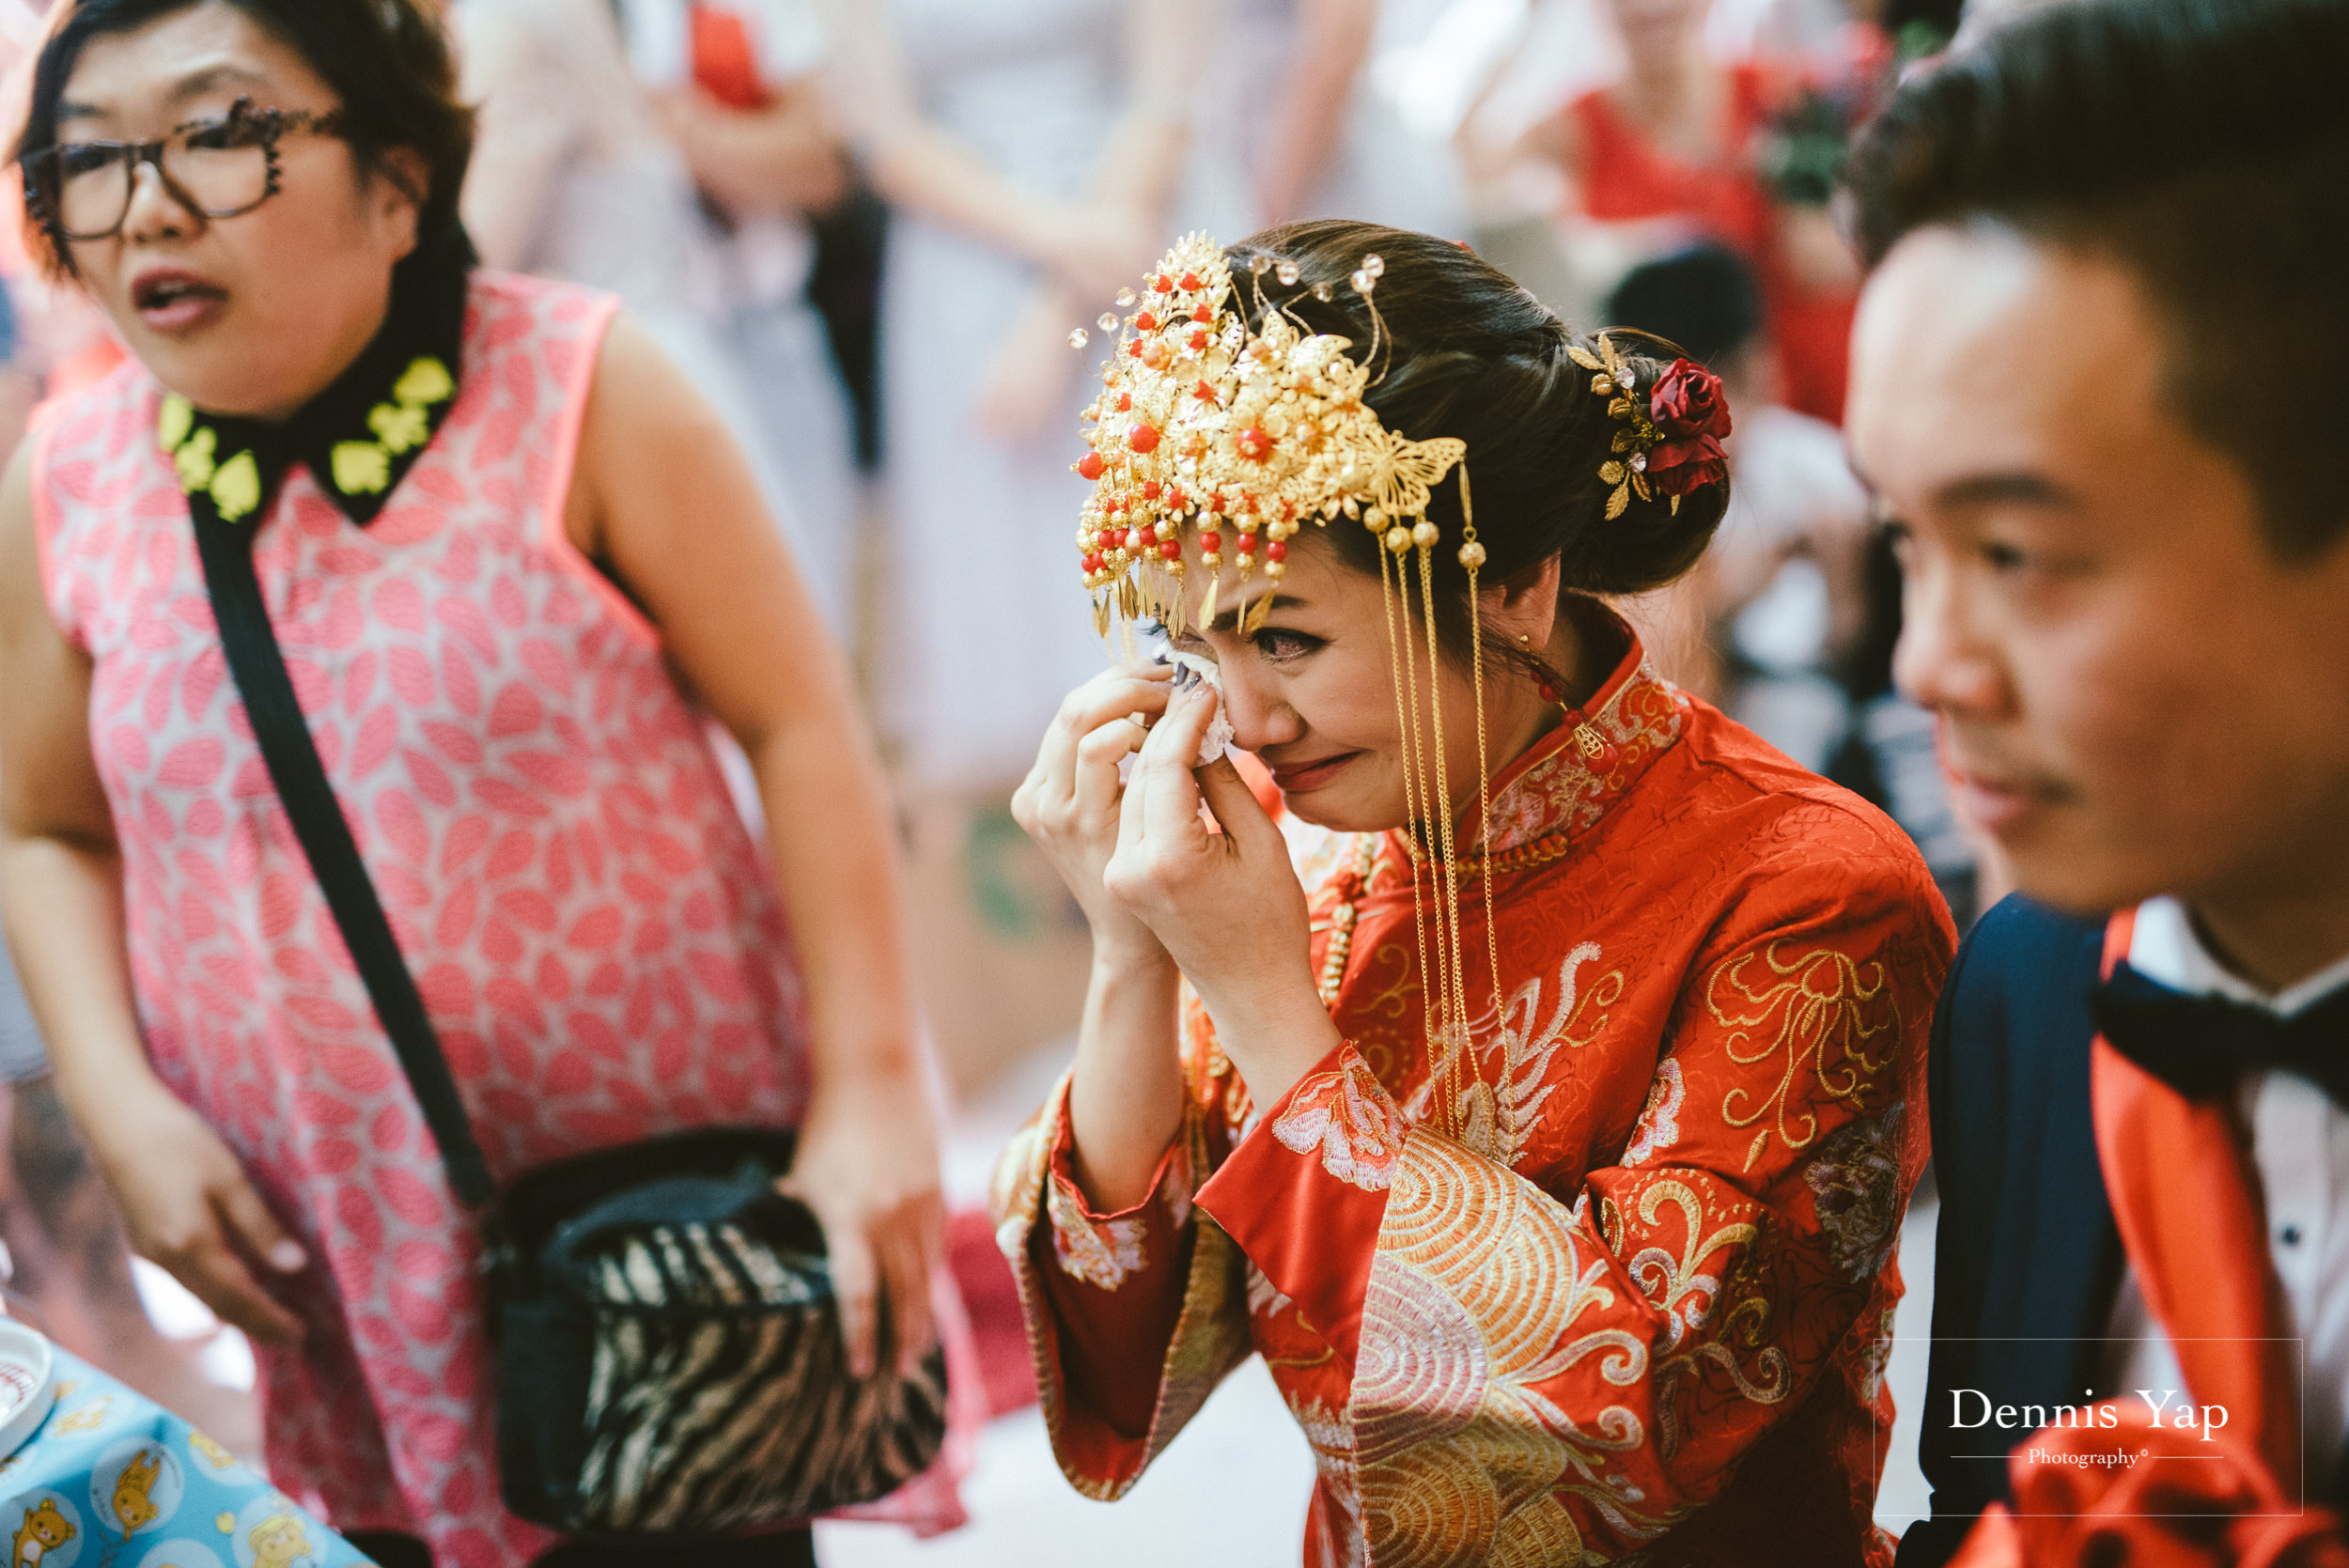 jimmy mellissa wedding day traditional chinese kua dennis yap photography-14.jpg